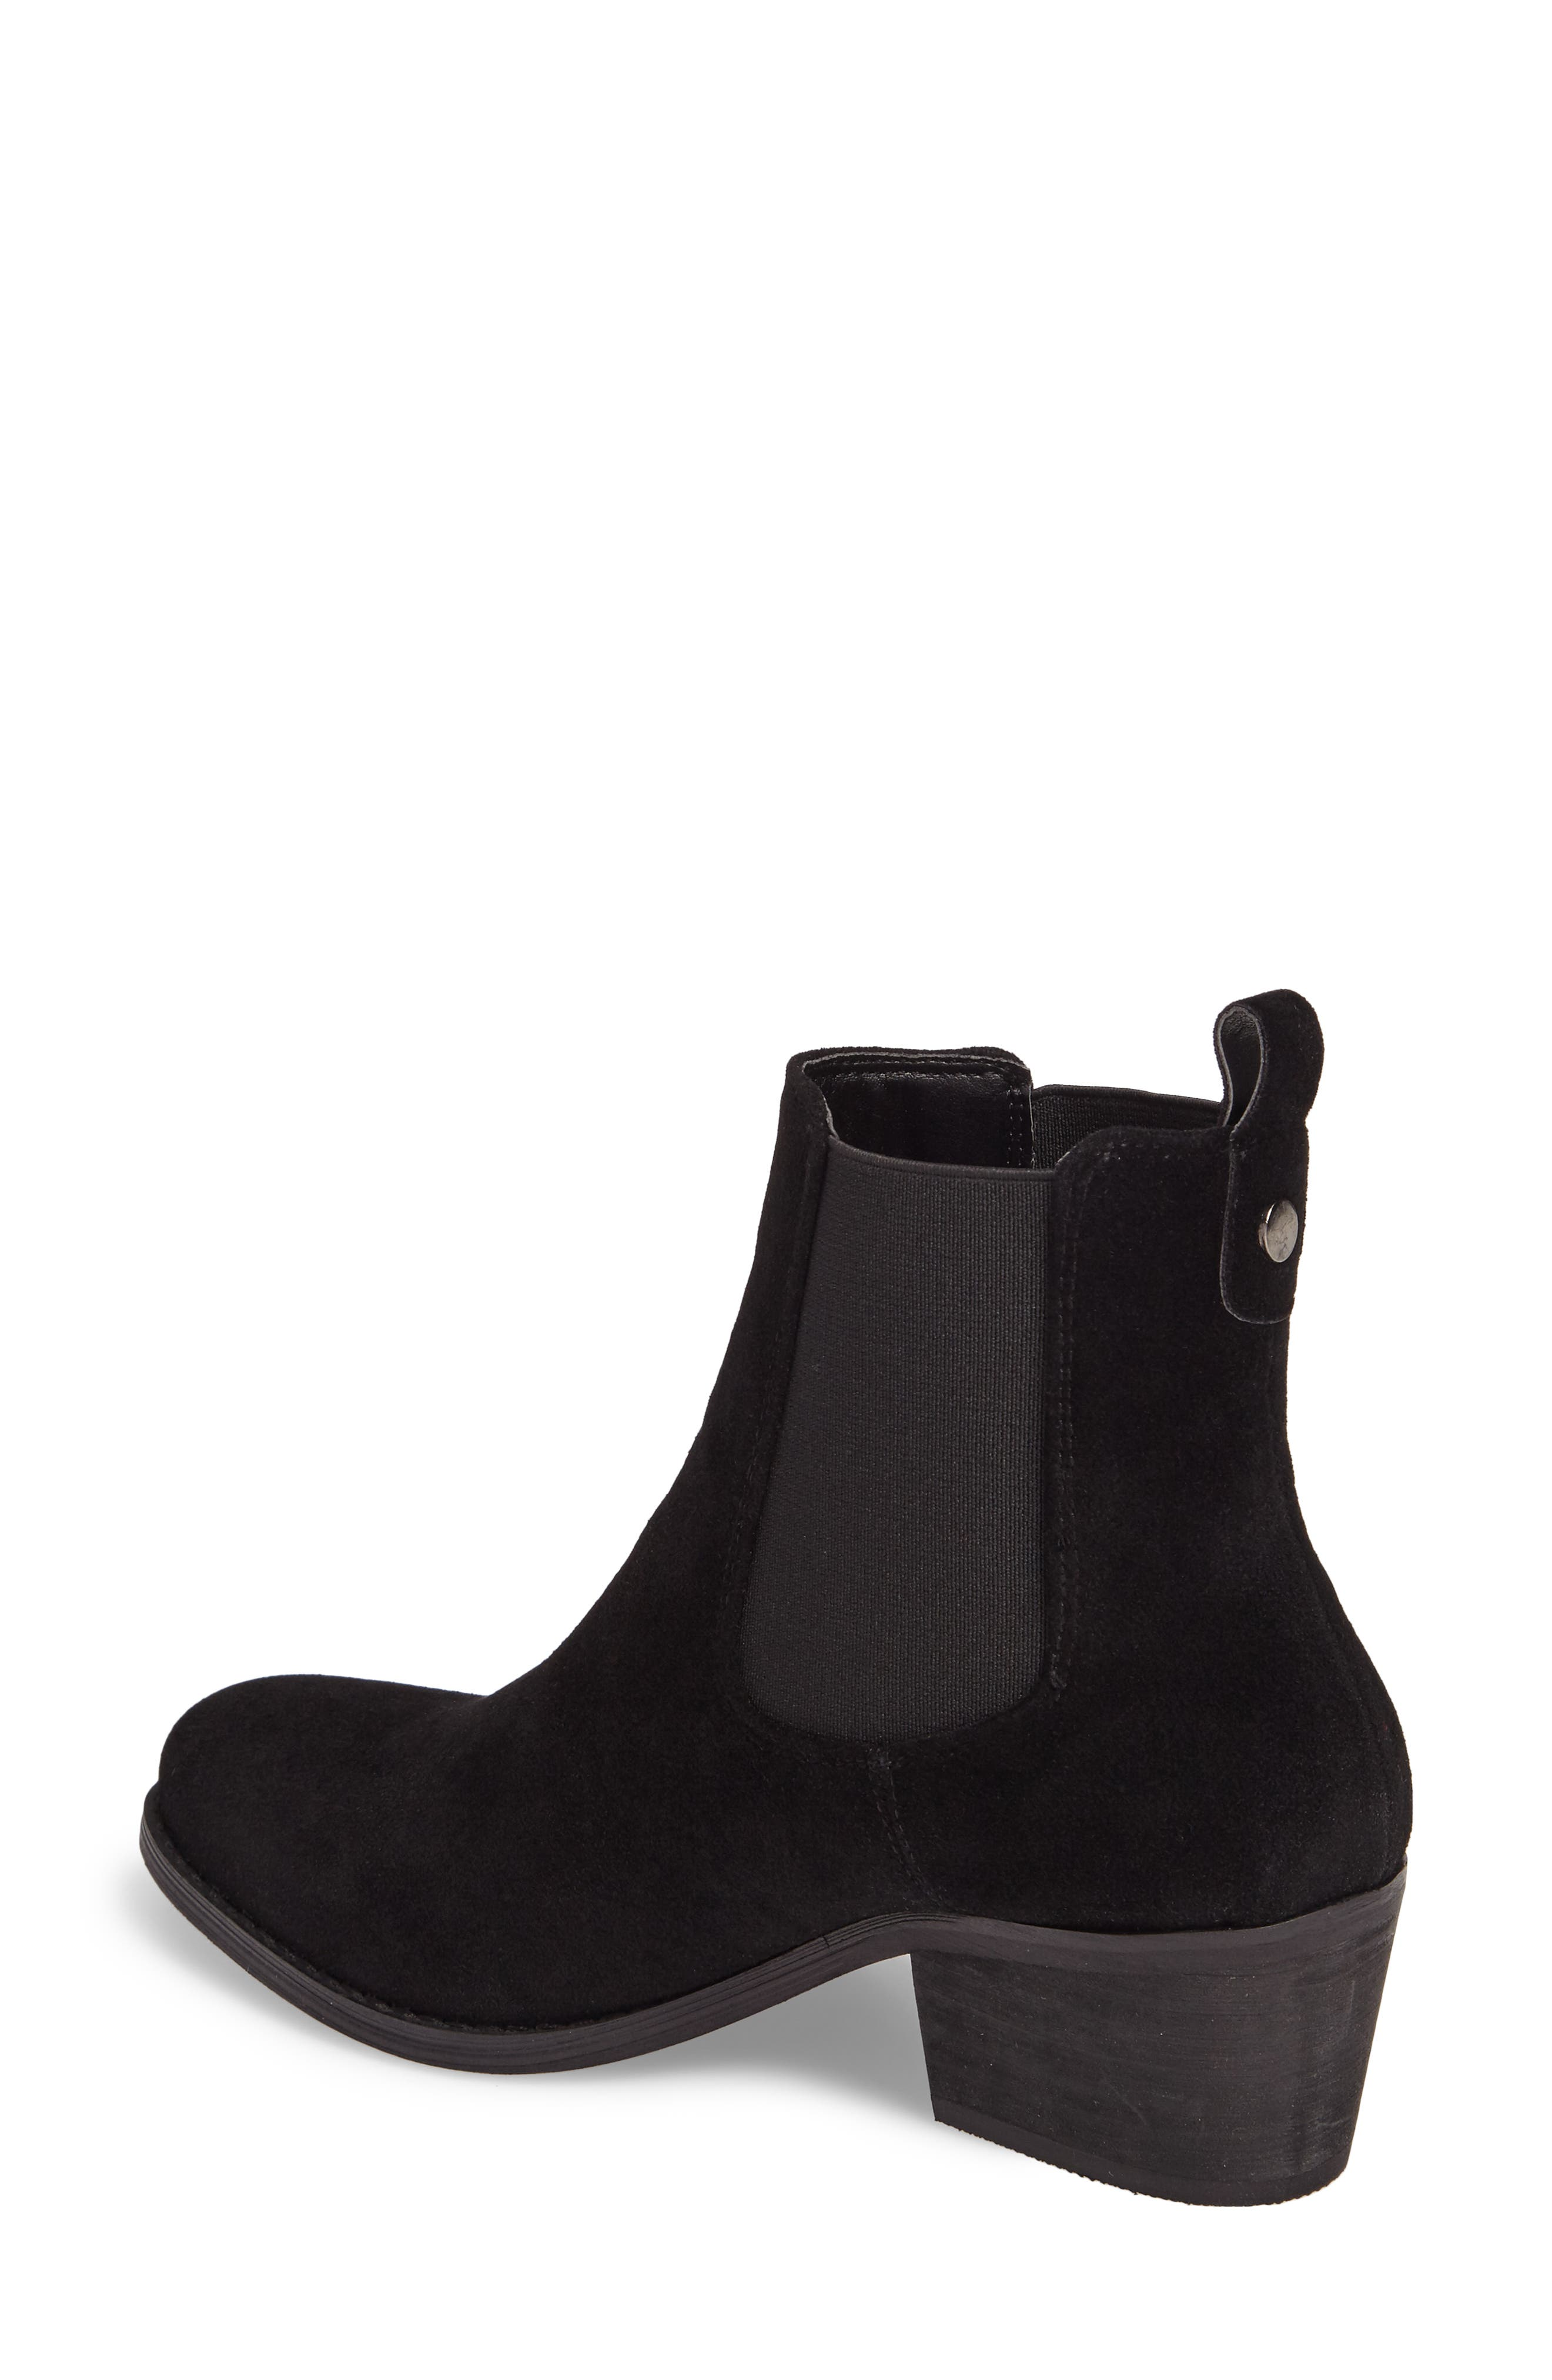 Ammore Chelsea Boot,                             Alternate thumbnail 2, color,                             Black Suede